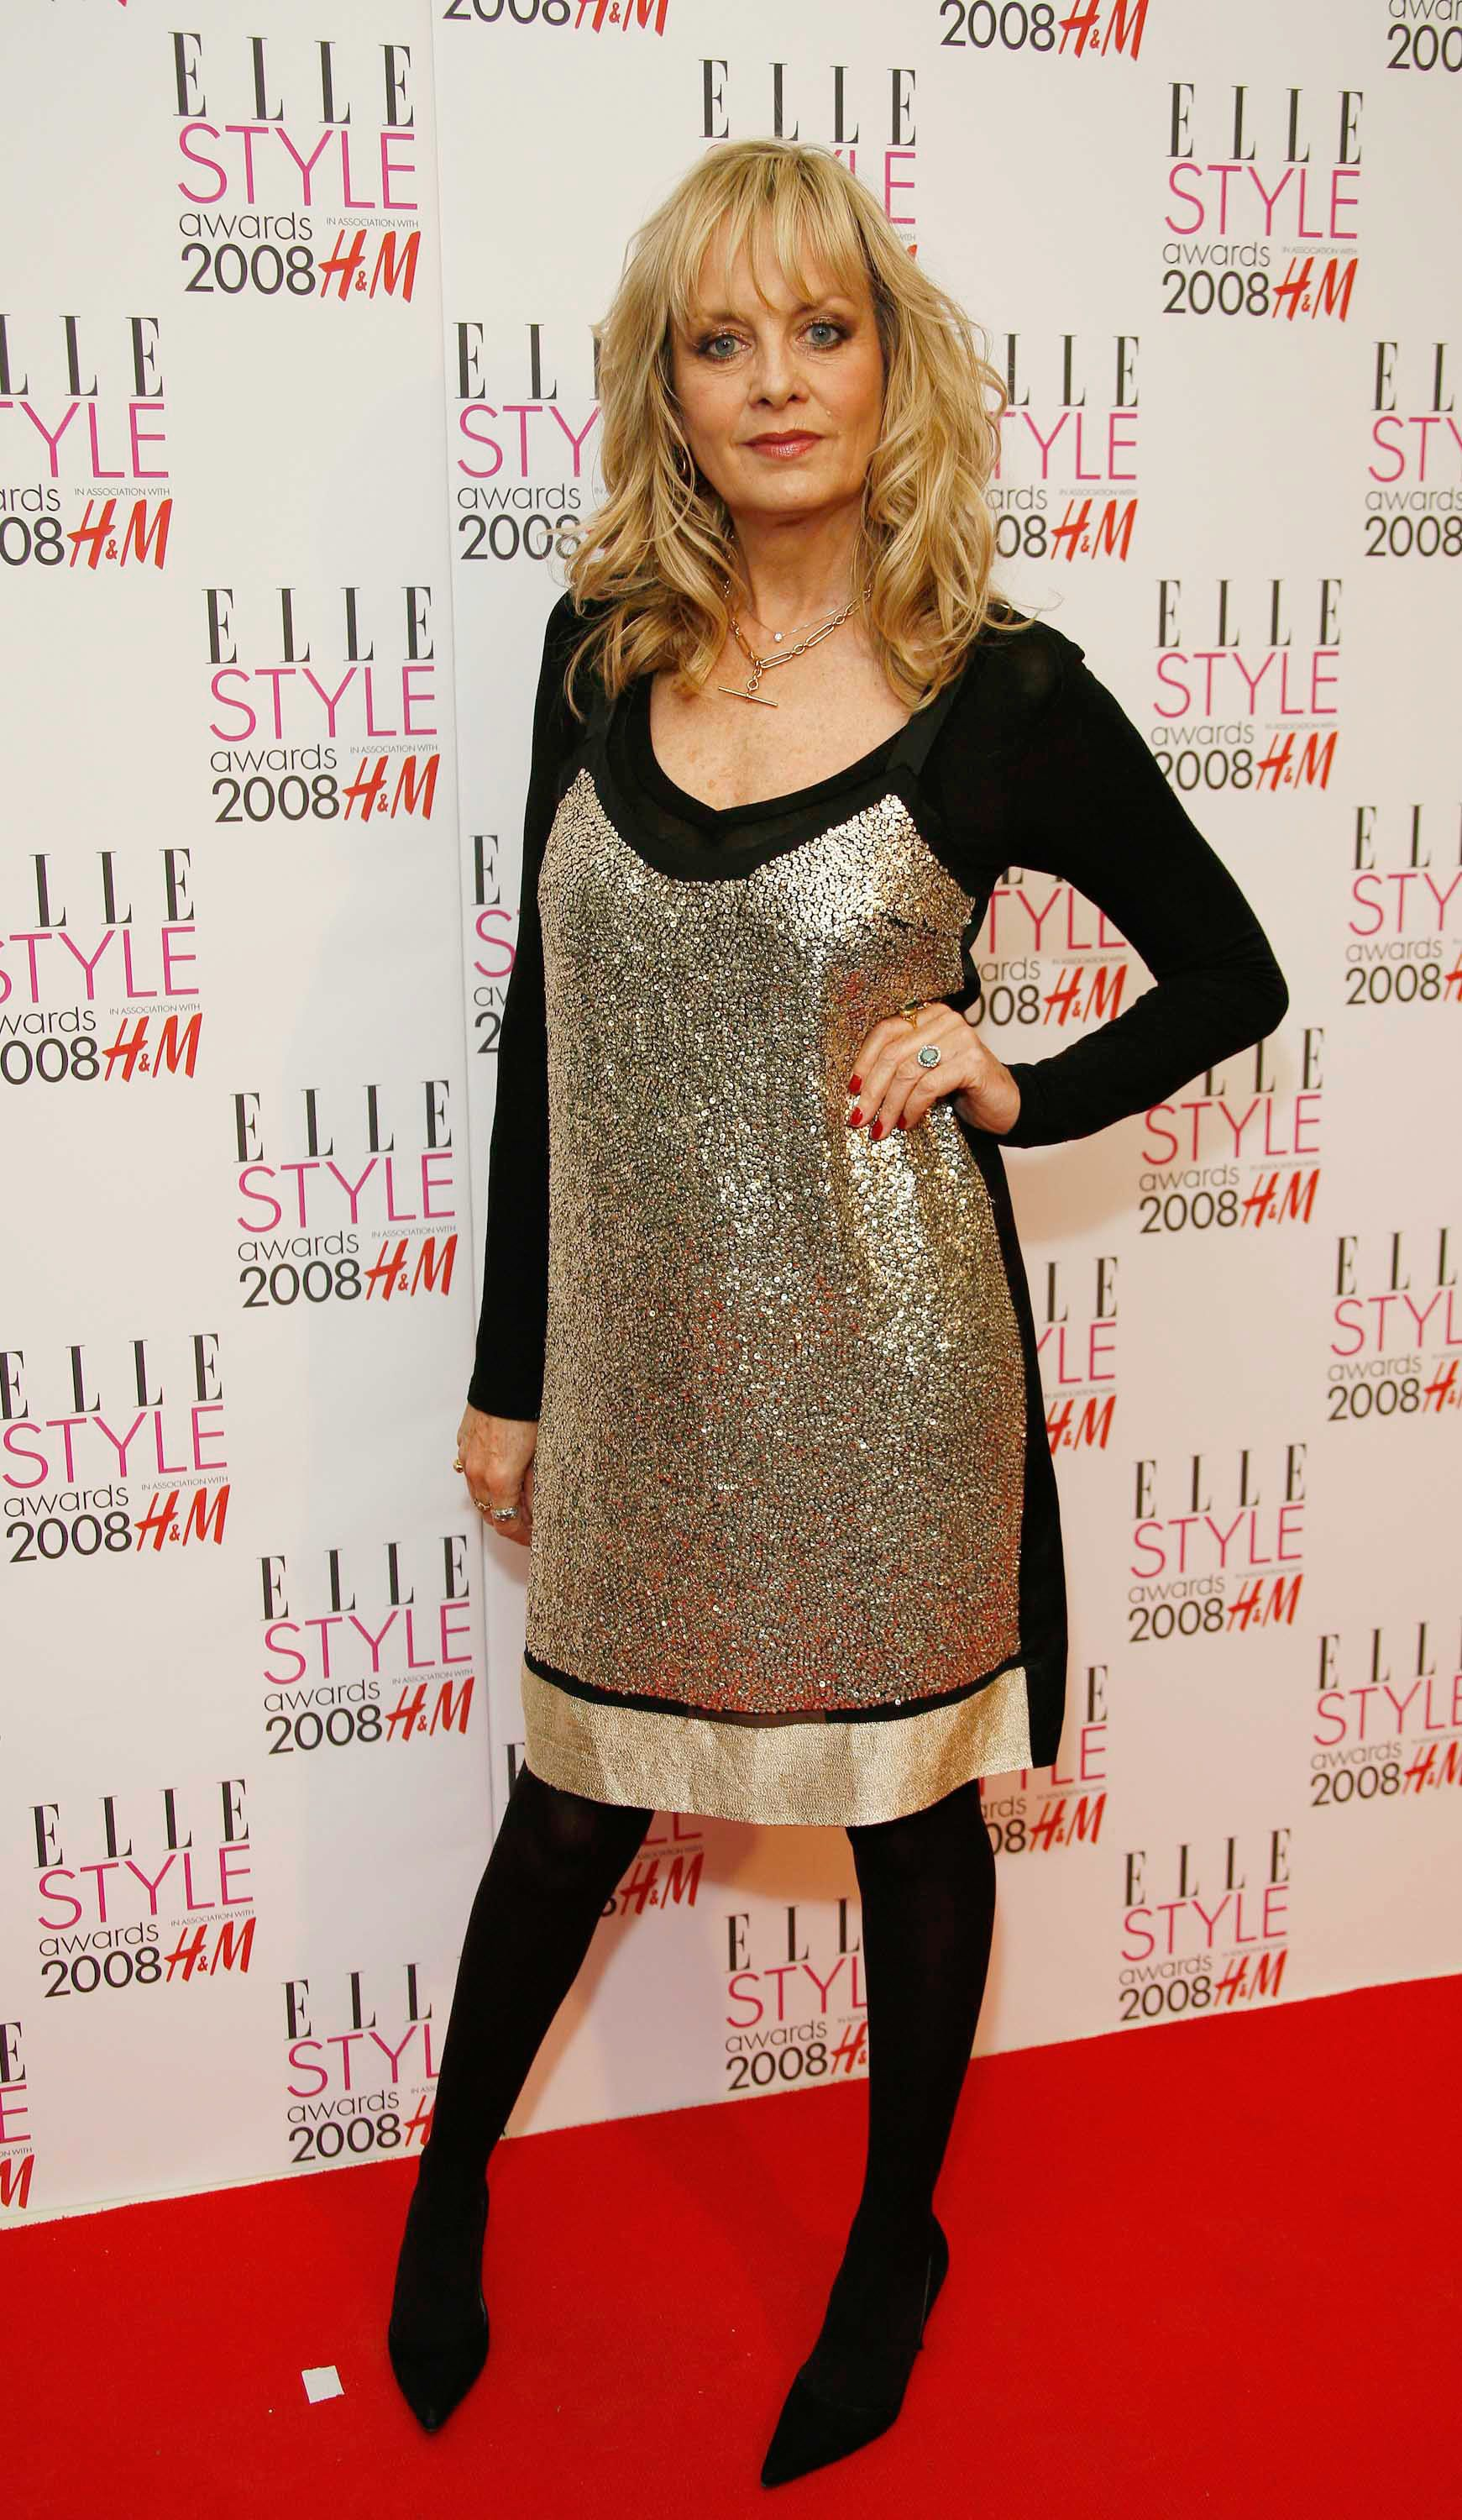 Twiggy arrives at the Elle Style Awards at The Westway in London.